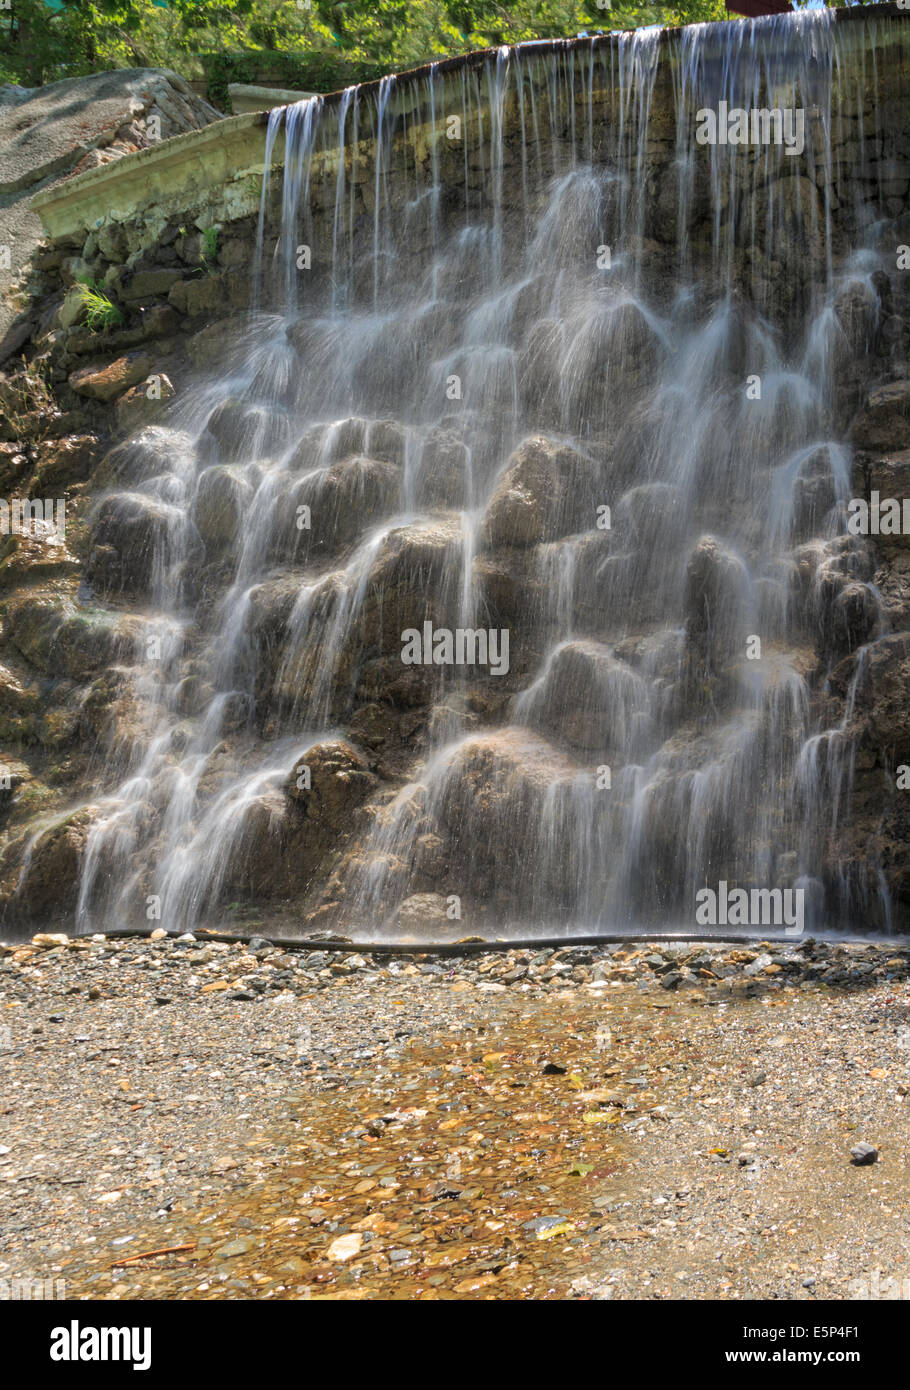 Waterfall at Dim river's picnic place - Stock Image